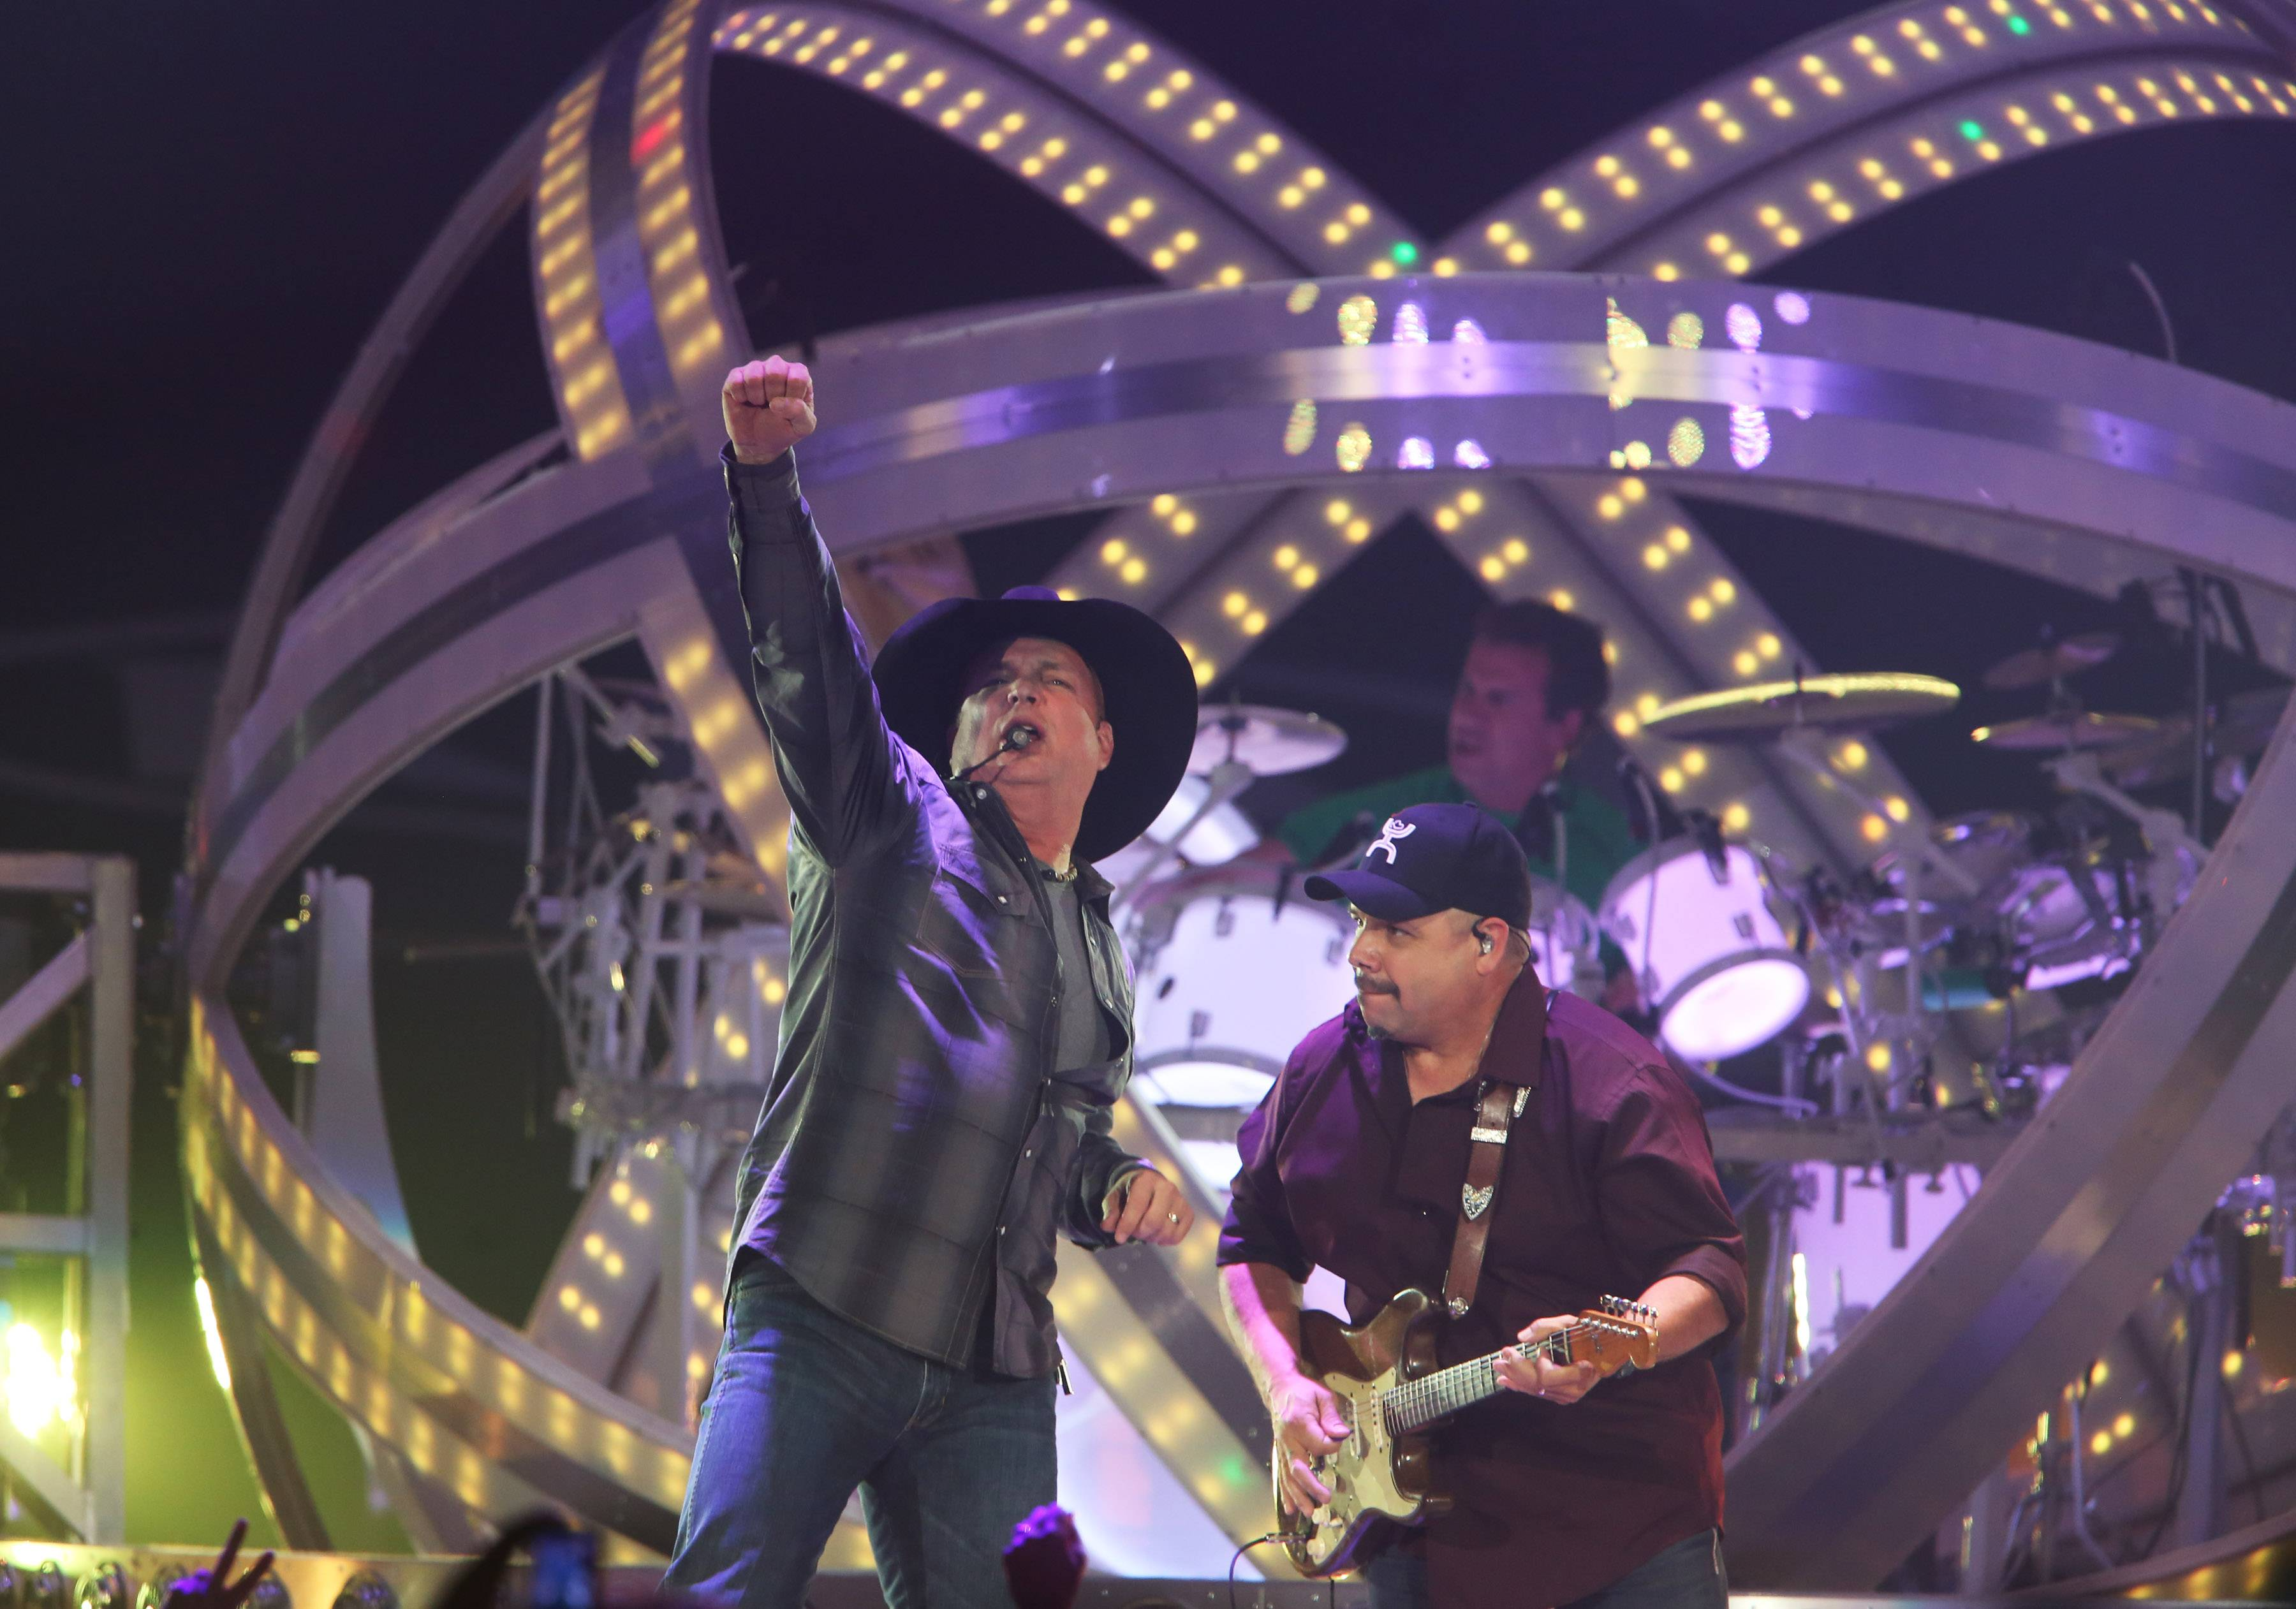 The concert promoter for country music star Garth Brooks received incentives that secured Rosemont's Allstate Arena as the opening location for Brooks' tour that began last September. The Illinois attorney general's office said village officials violated the state law when they denied a records request for details about the incentives.